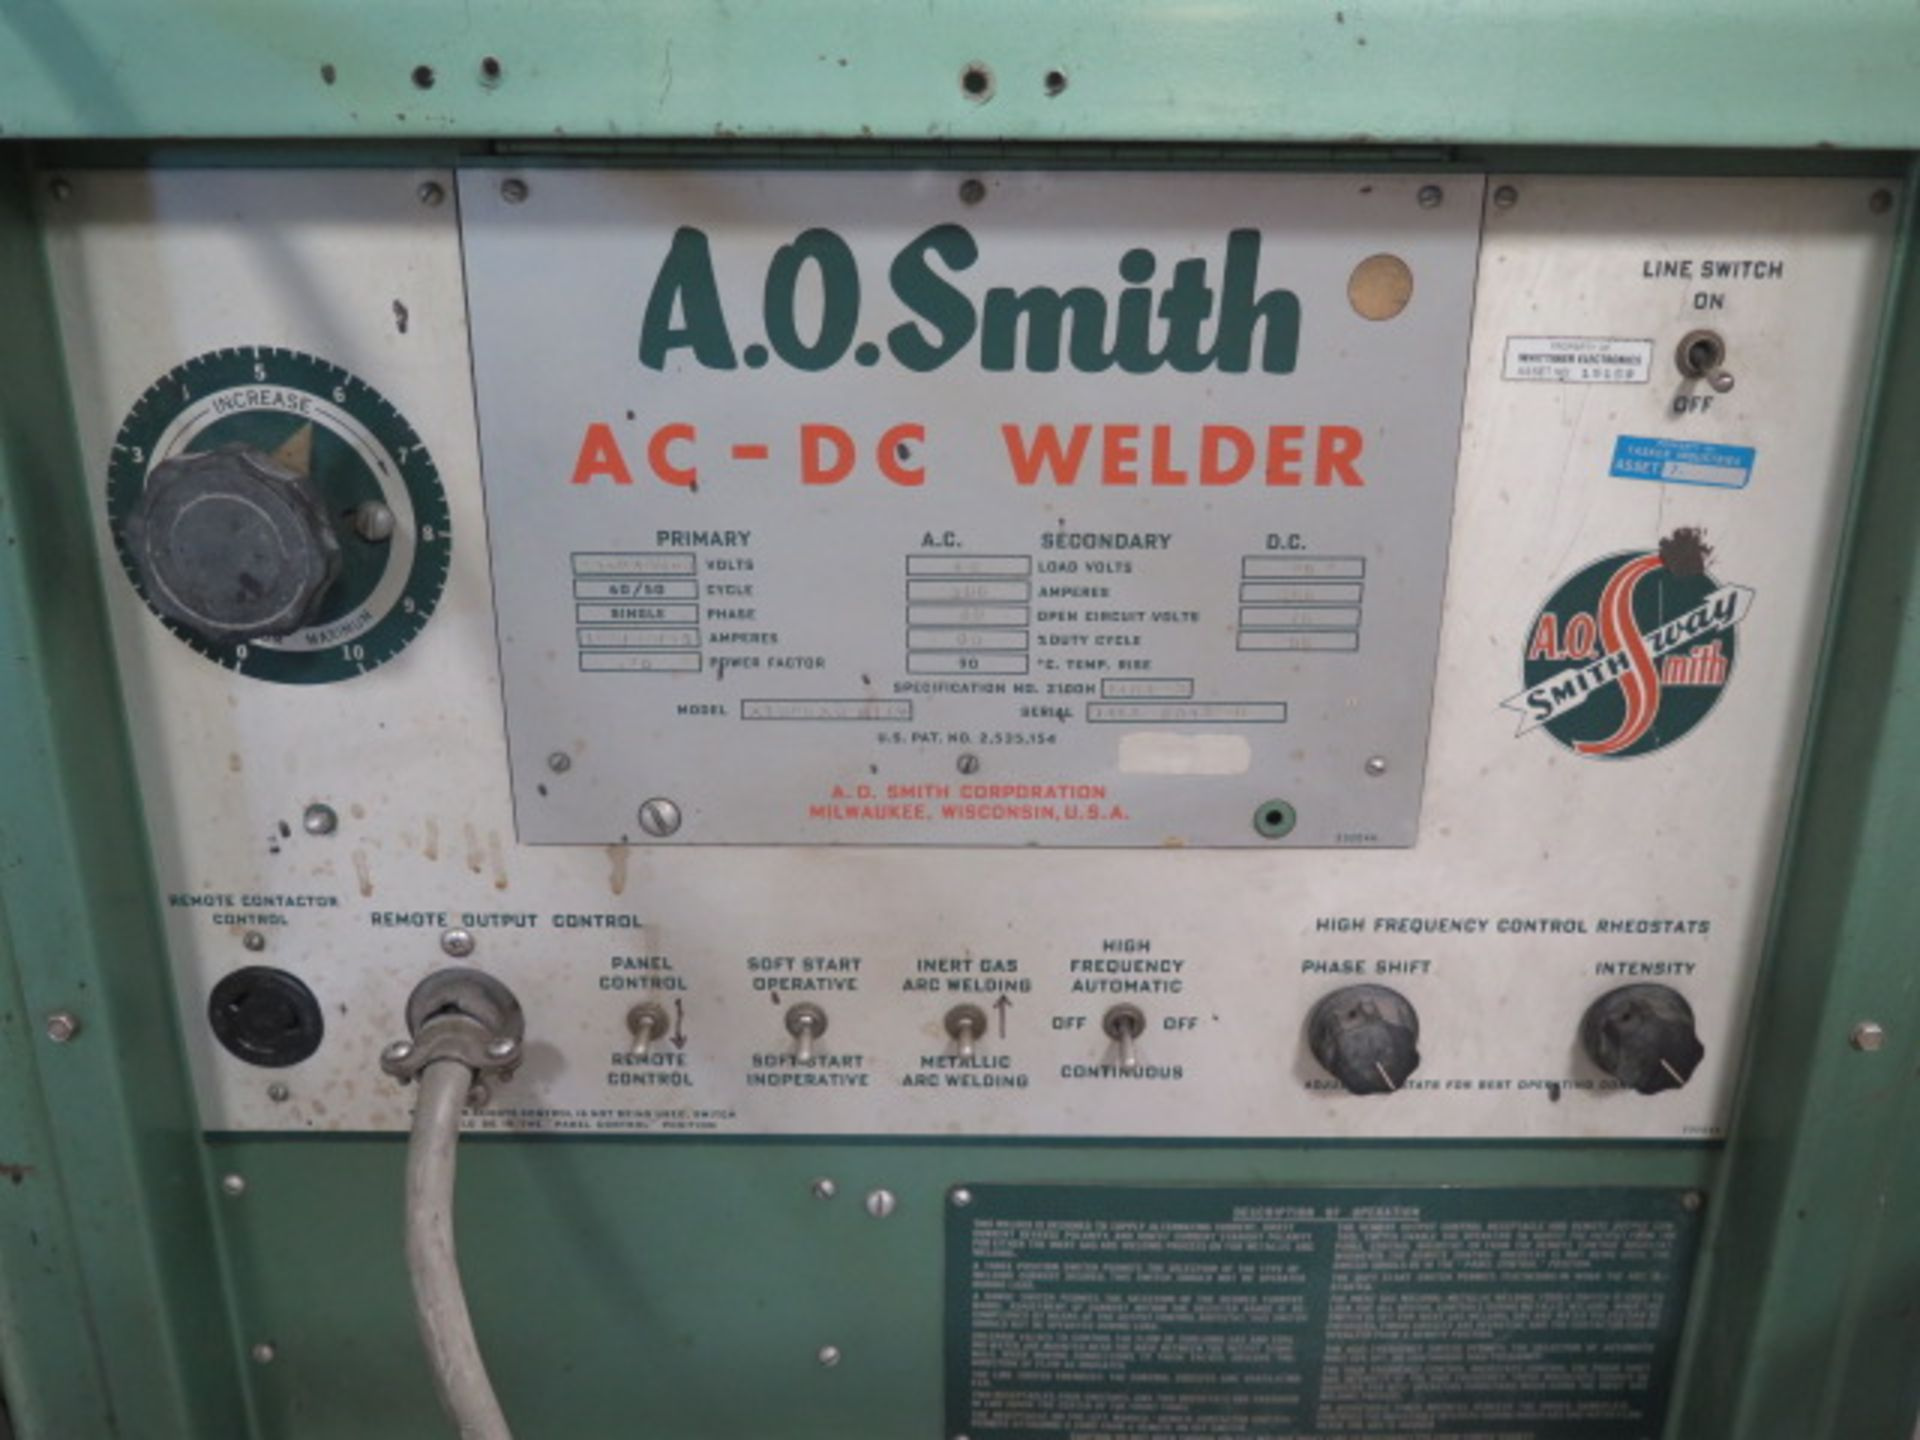 AO Smith A3000AD AFGW AC/DC Arc Welding Power Source s/n 1453-6043-8 (SOLD AS-IS - NO WARRANTY) - Image 4 of 8